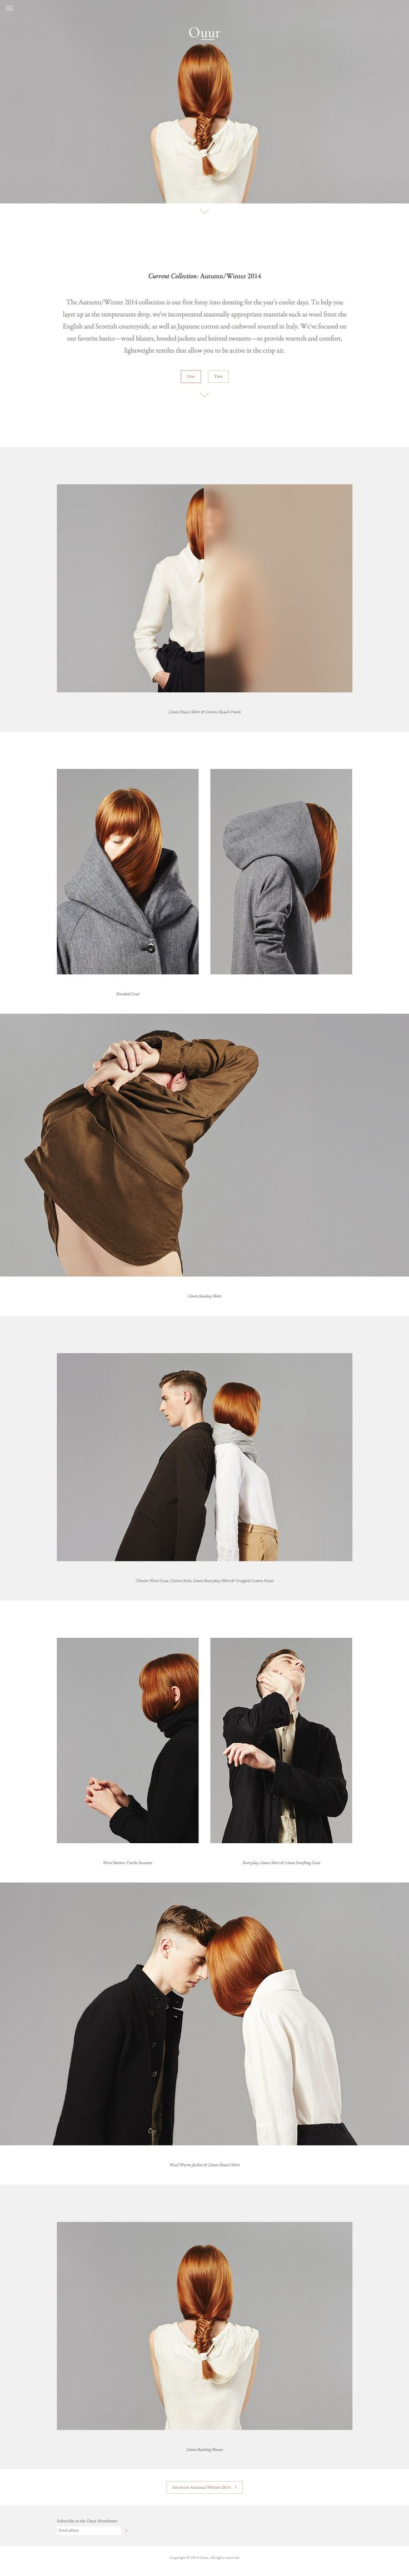 Ouur Collection \\ Nice and clean. http://www.ouurcollection.com